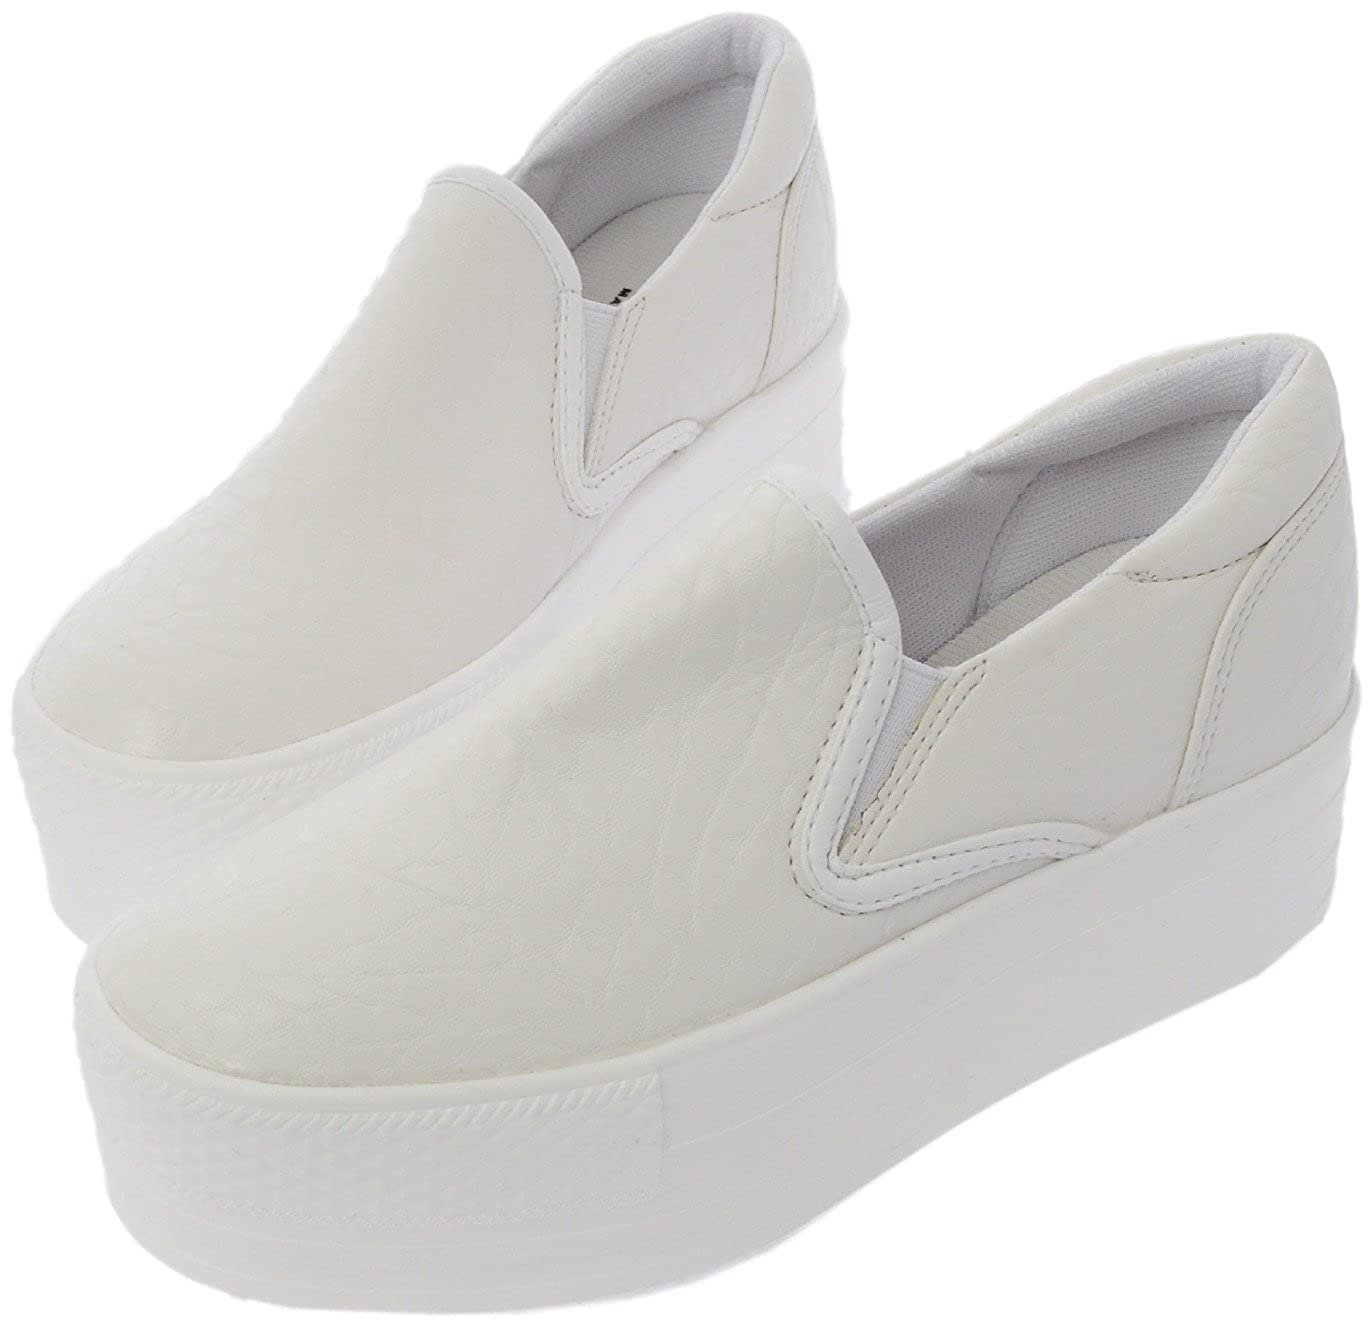 99cb8e9bc8b09 Maxstar C7 50 Synthetic Leather White Platform Slip on Sneakers